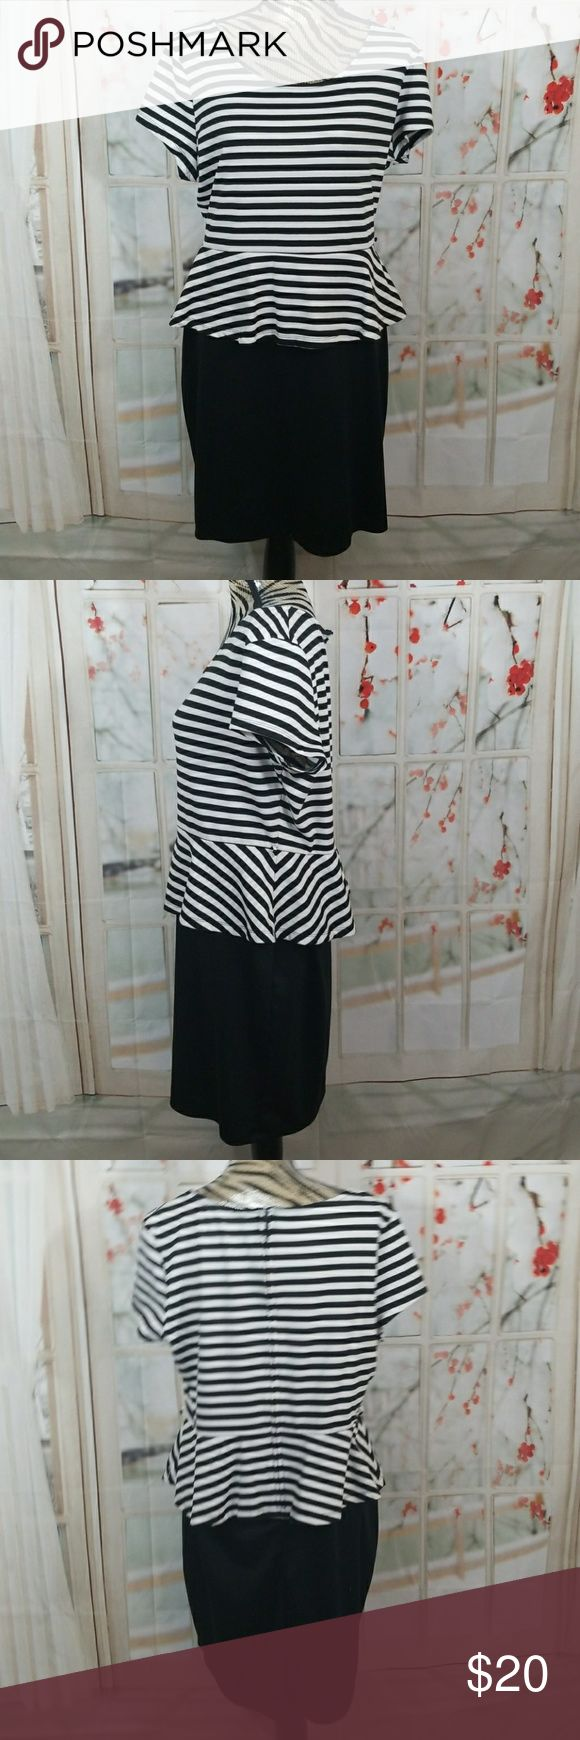 Black and white peplum dress Black and white striped top solid black bottom  Zips up back Had loops for a belt No size tag but fits like size 18 Armpit to armpit is approximately 23 inches Dresses